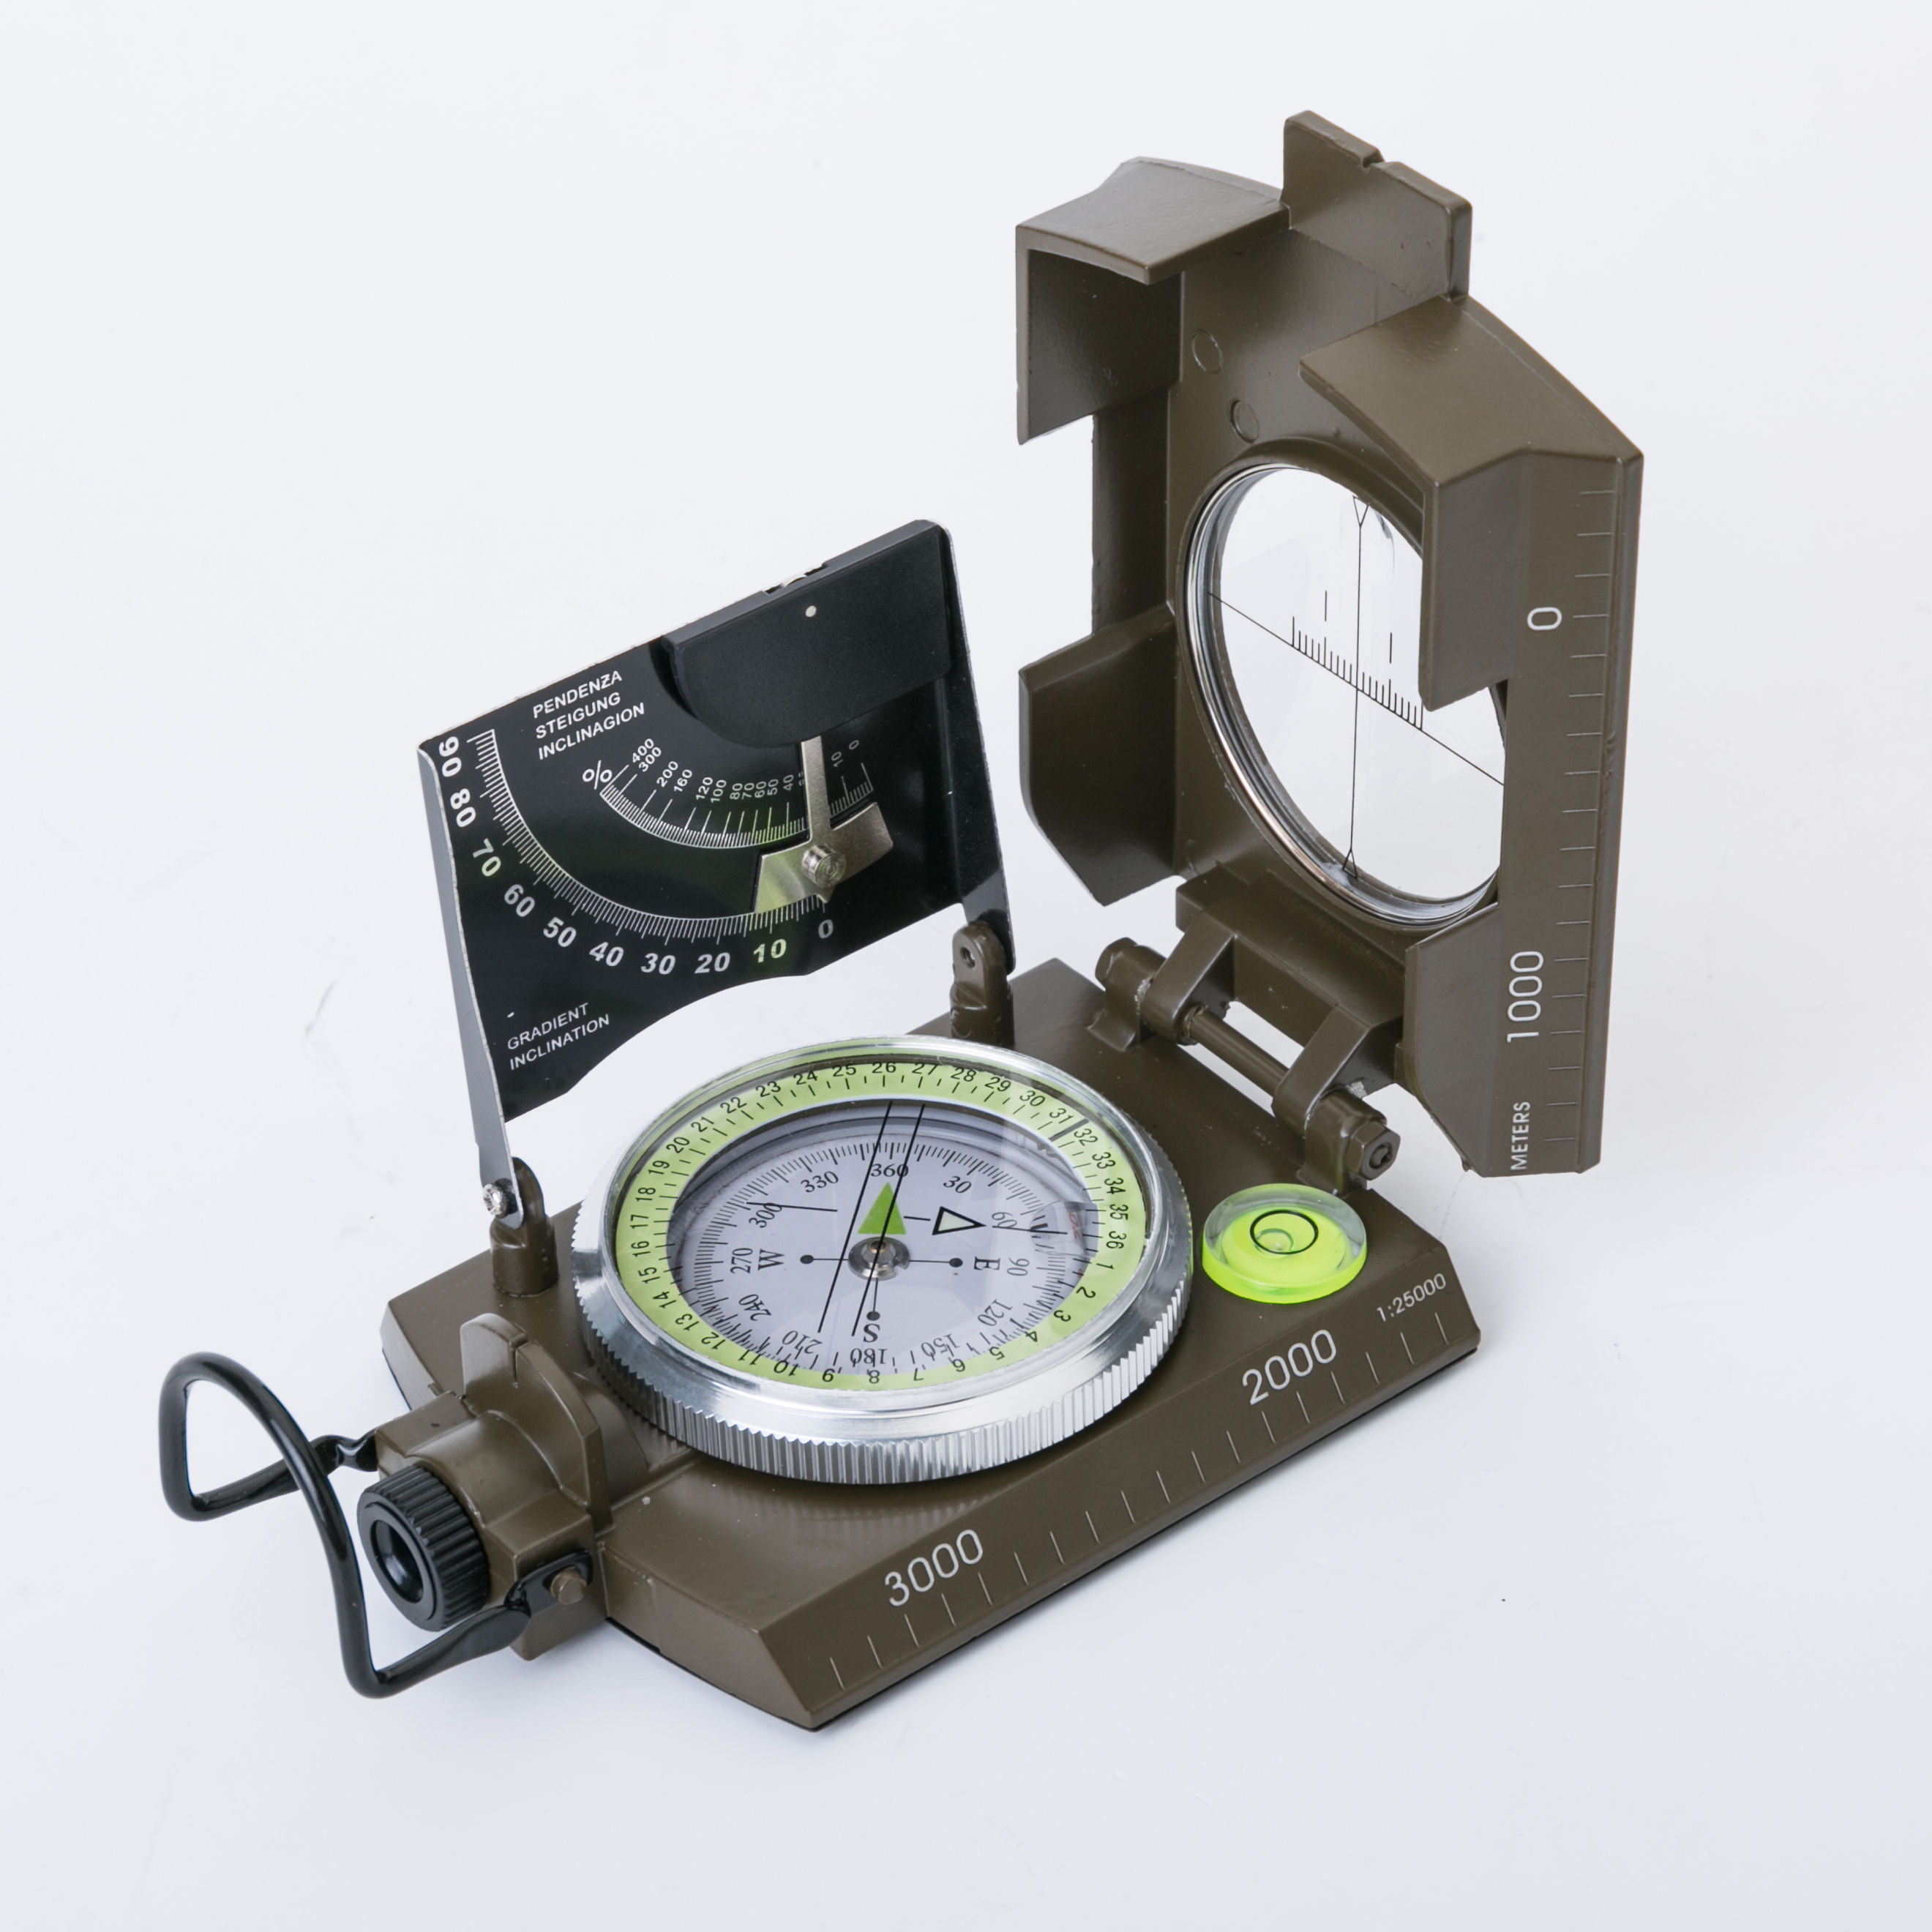 Camping survival lensatic compass military equipment aiming luminous lens geological compass